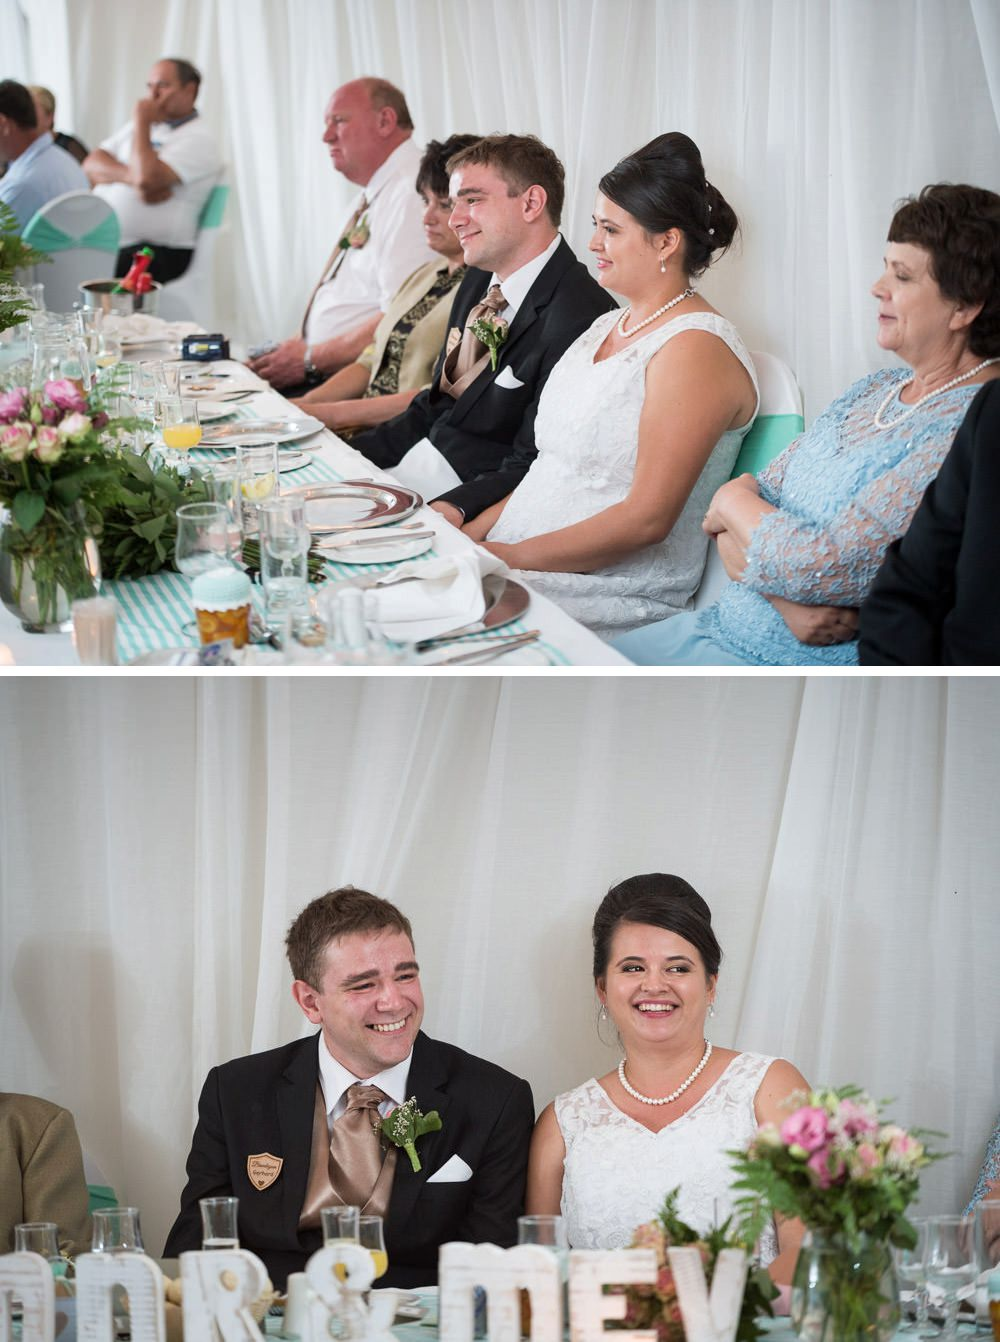 Angela & Gerhard's Wedding